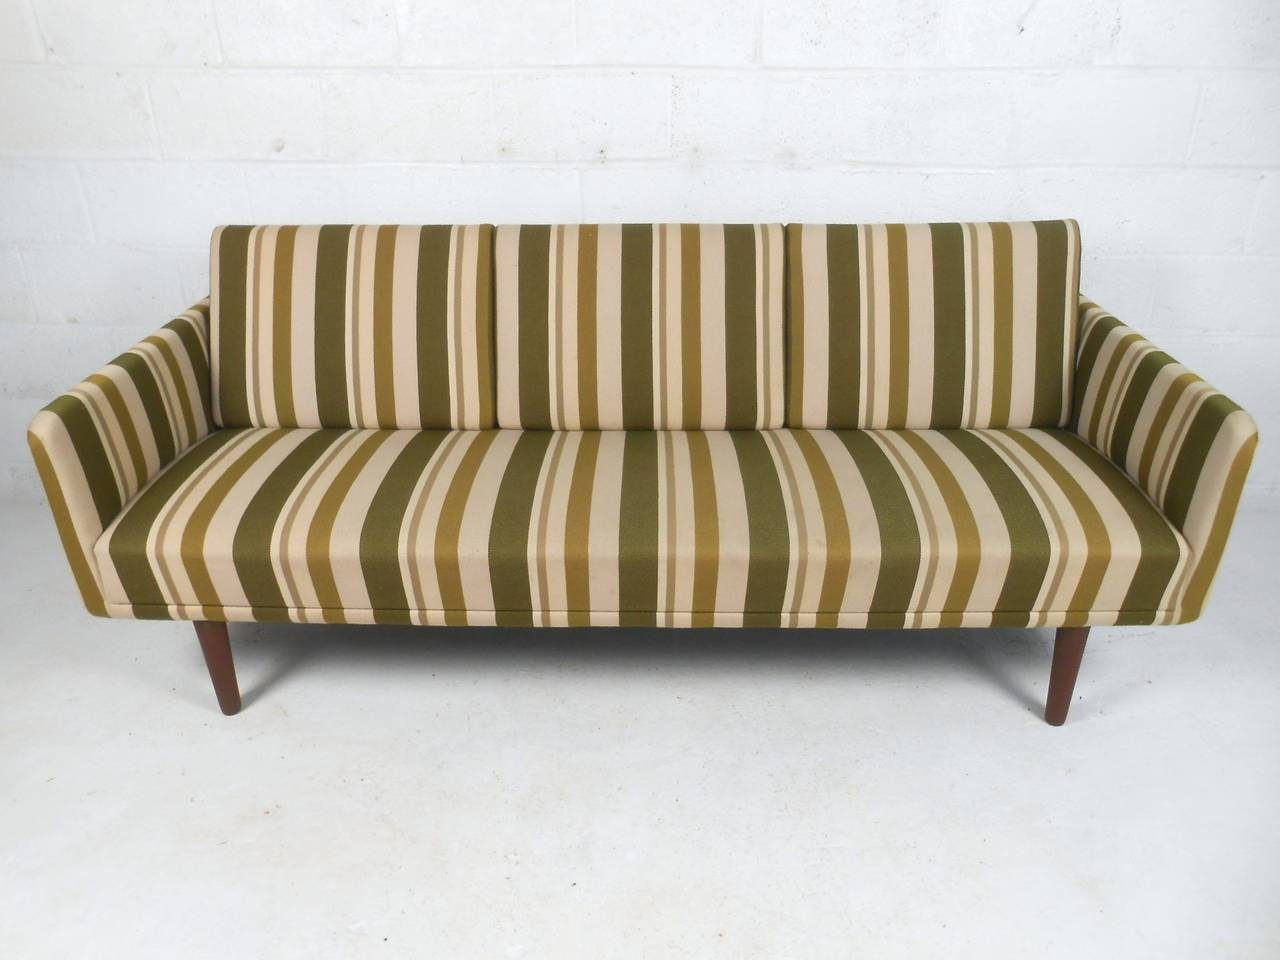 This beautiful Mid-Century sofa combines simple yet elegant lines with striking vintage upholstery. Unique yet subtle vintage Danish design makes this a wonderful addition to any modern interior. Please confirm item location (NY or NJ).